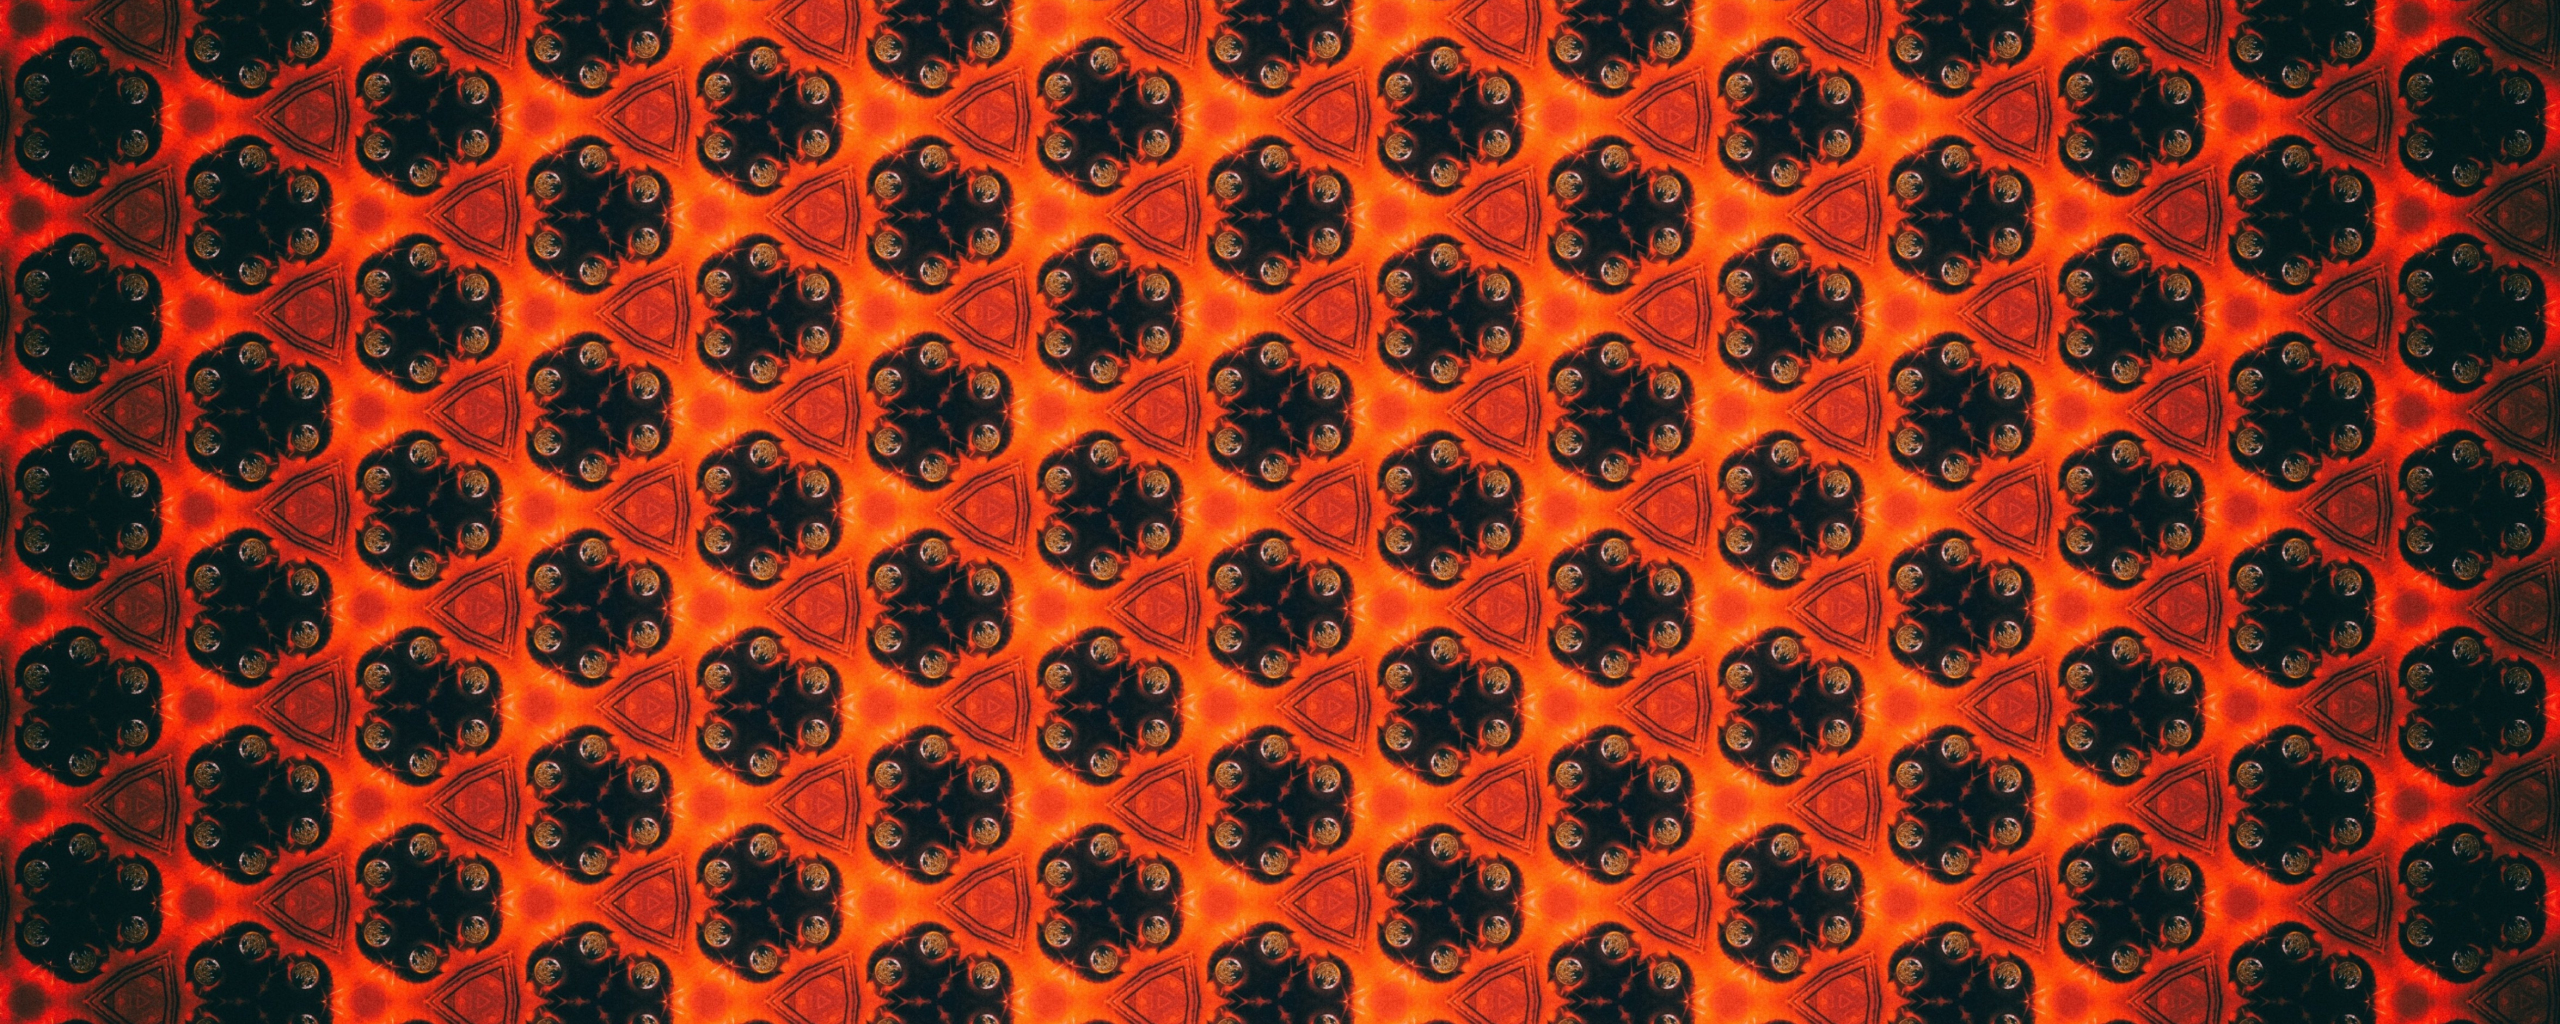 Patterns, flowers, shapes, abstract, 2560x1024 wallpaper